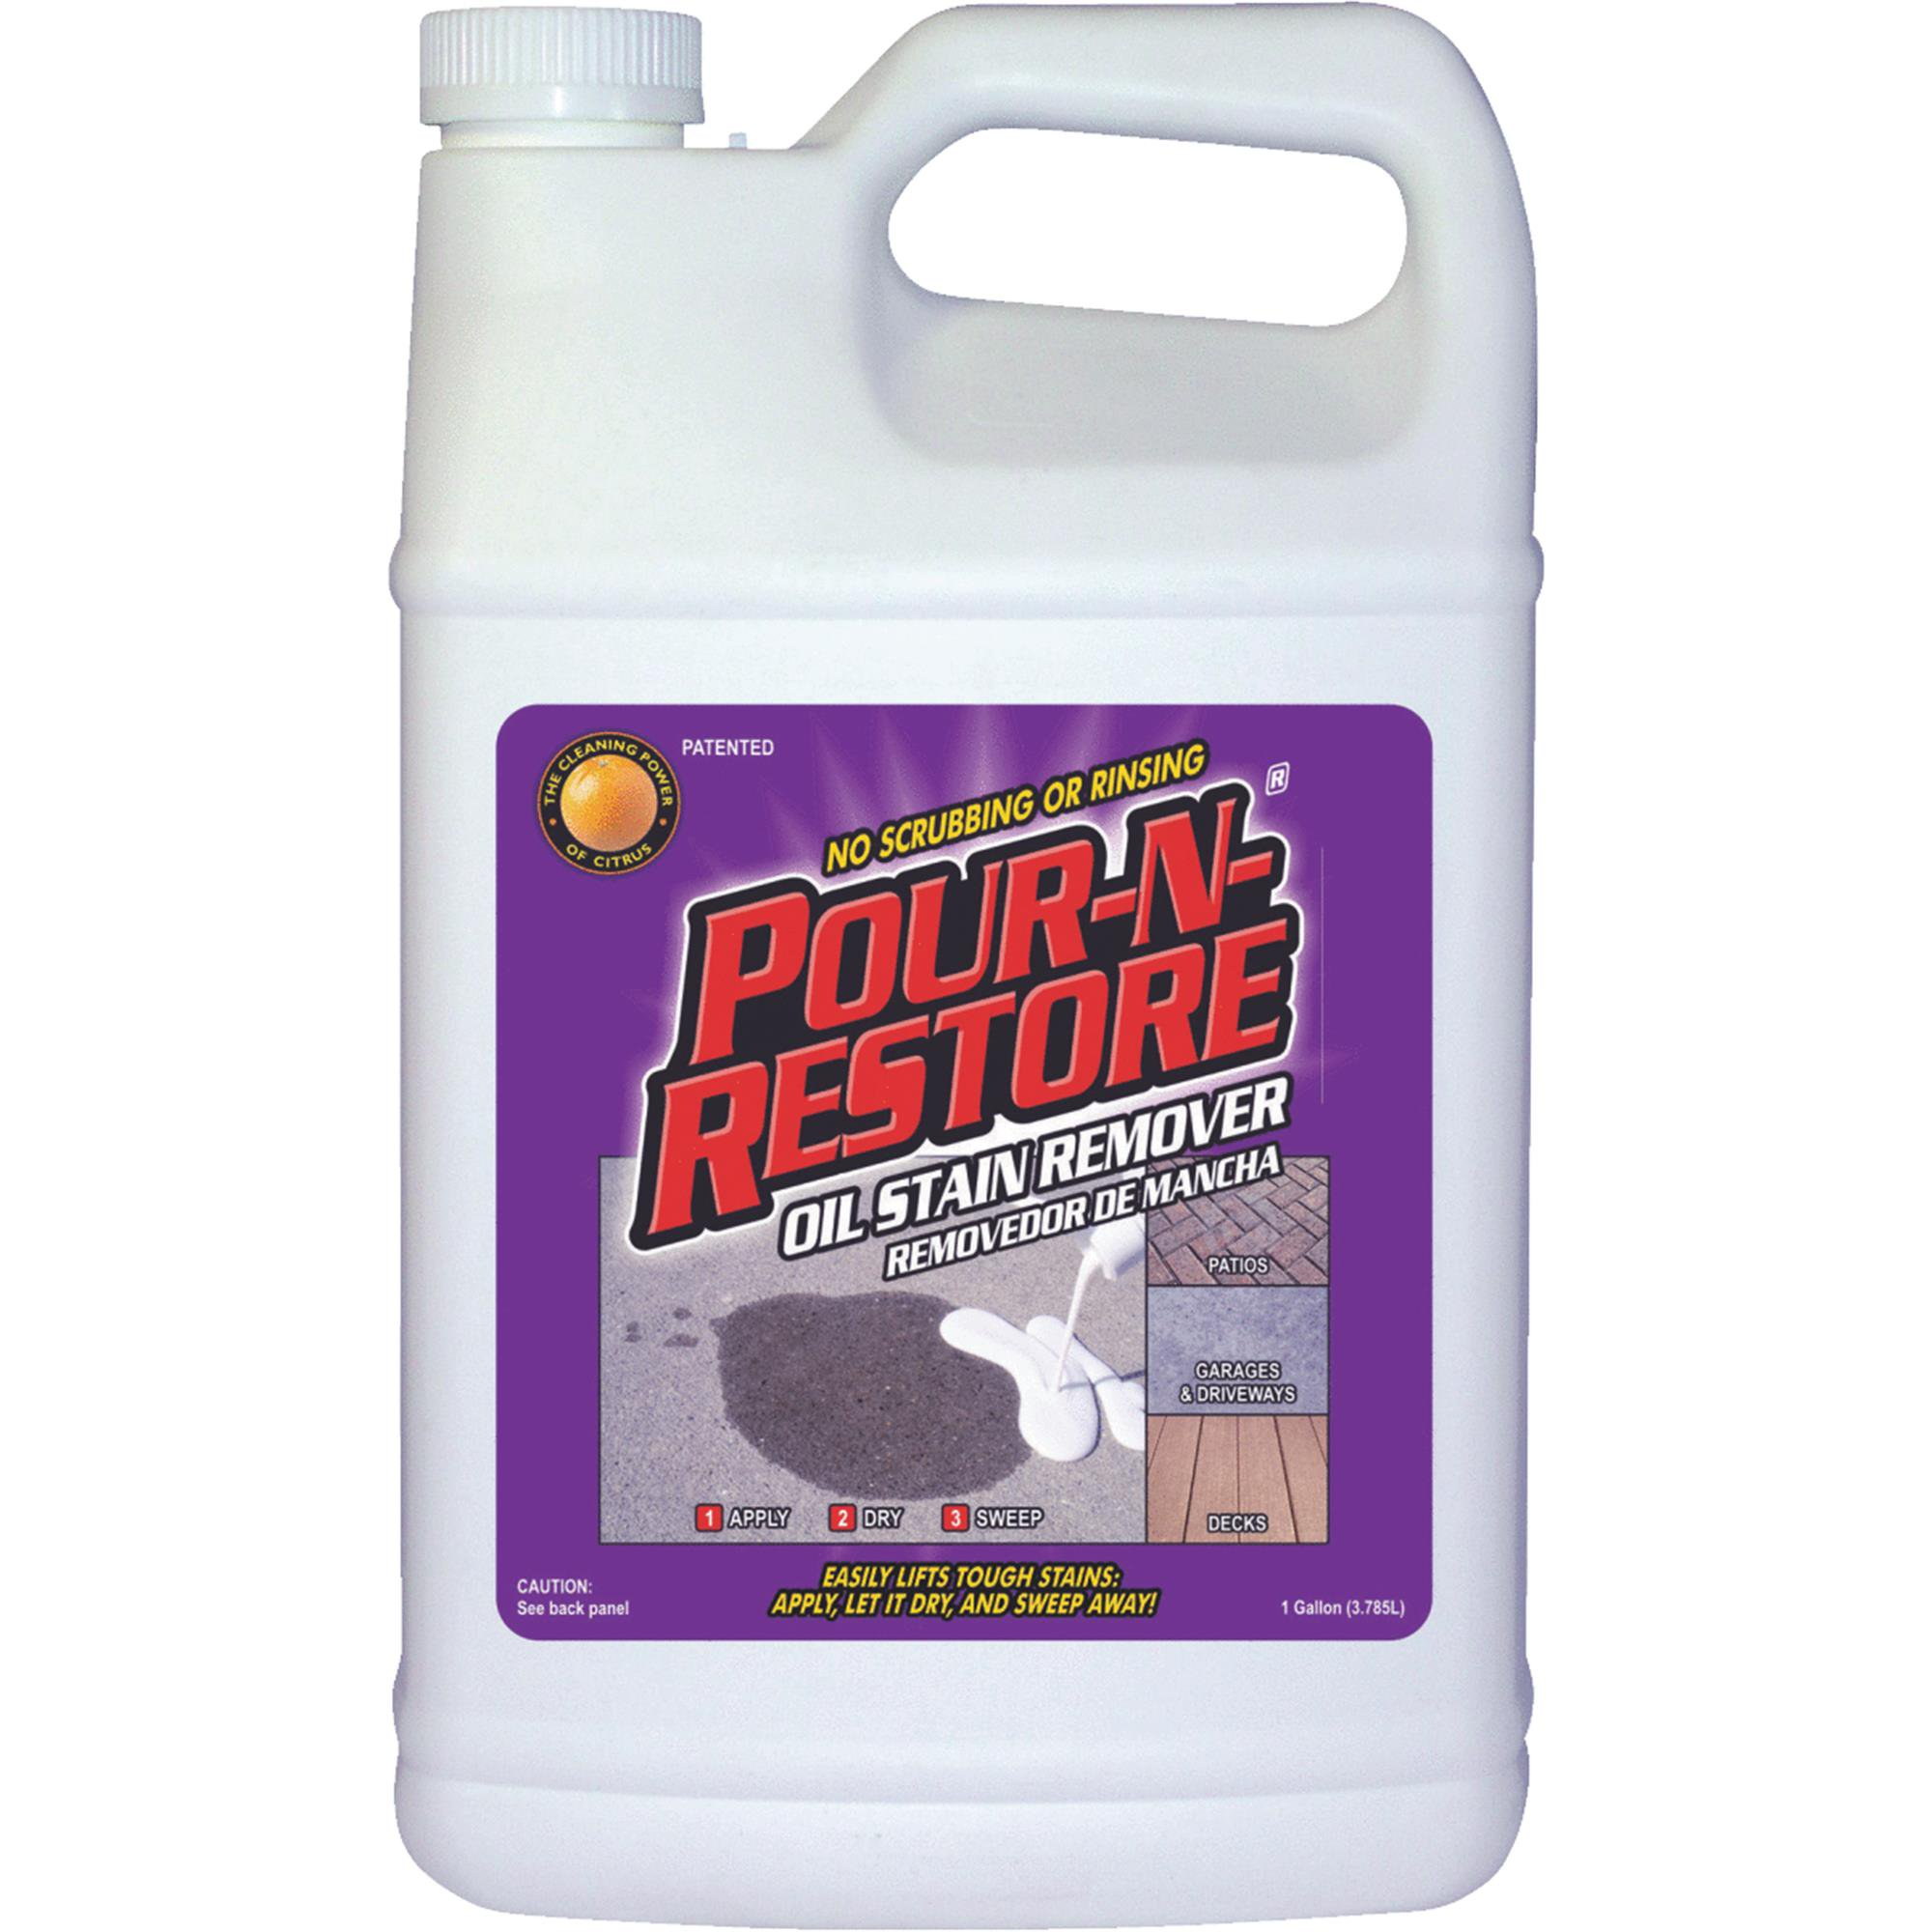 Pour-N-Restore Concrete And Masonry Oil Stain Remover by Edgewater Industries